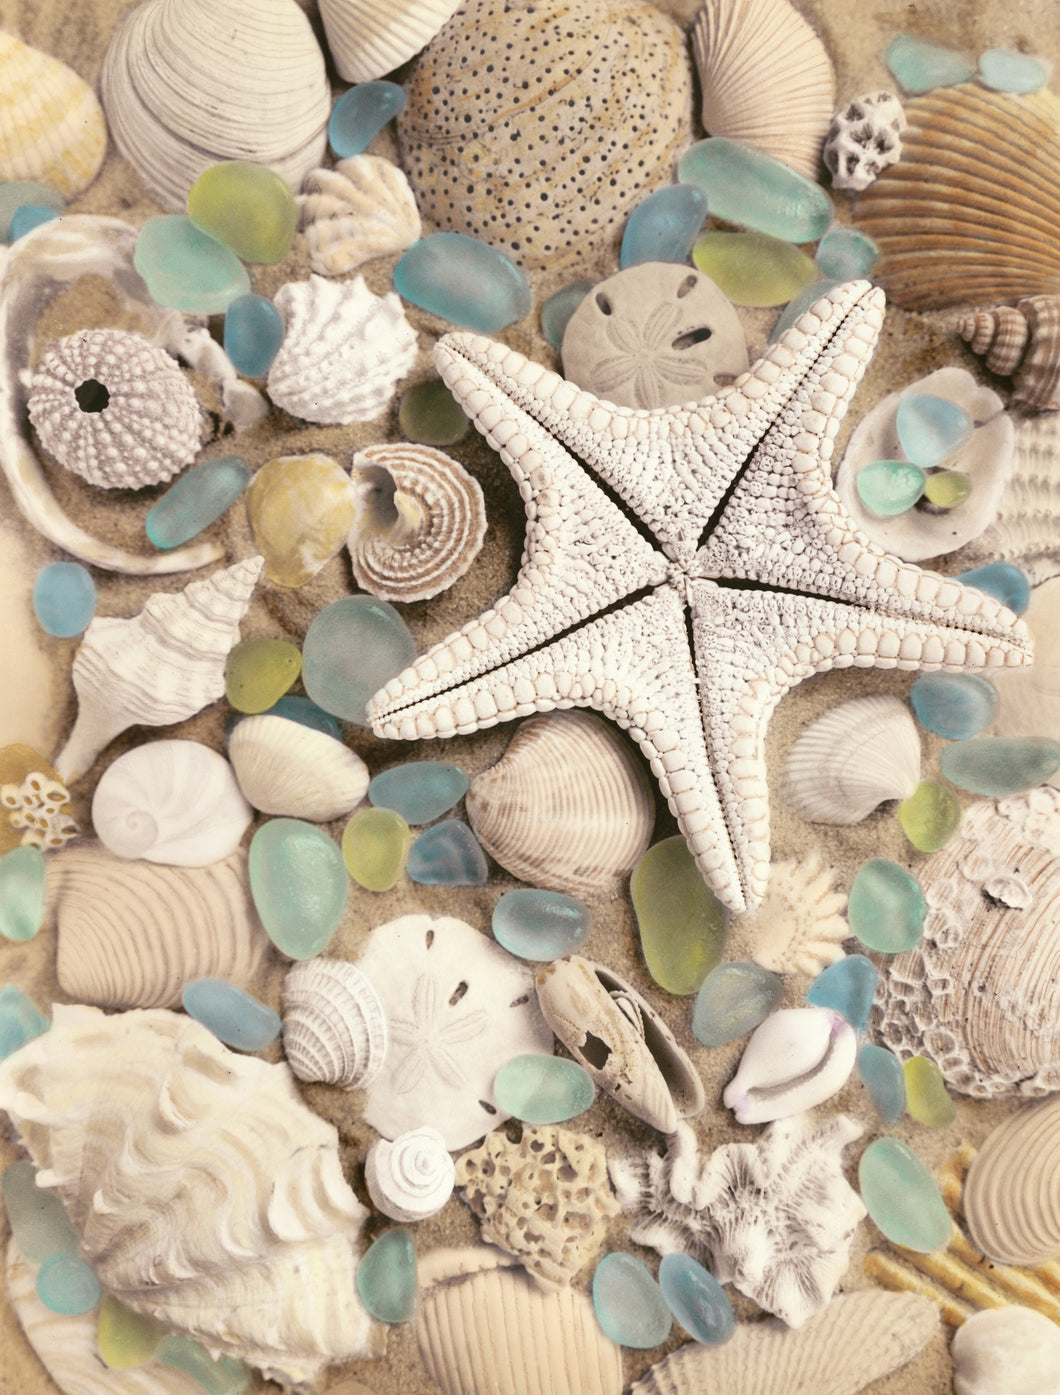 Bahama Starfish and Urchin Artwork